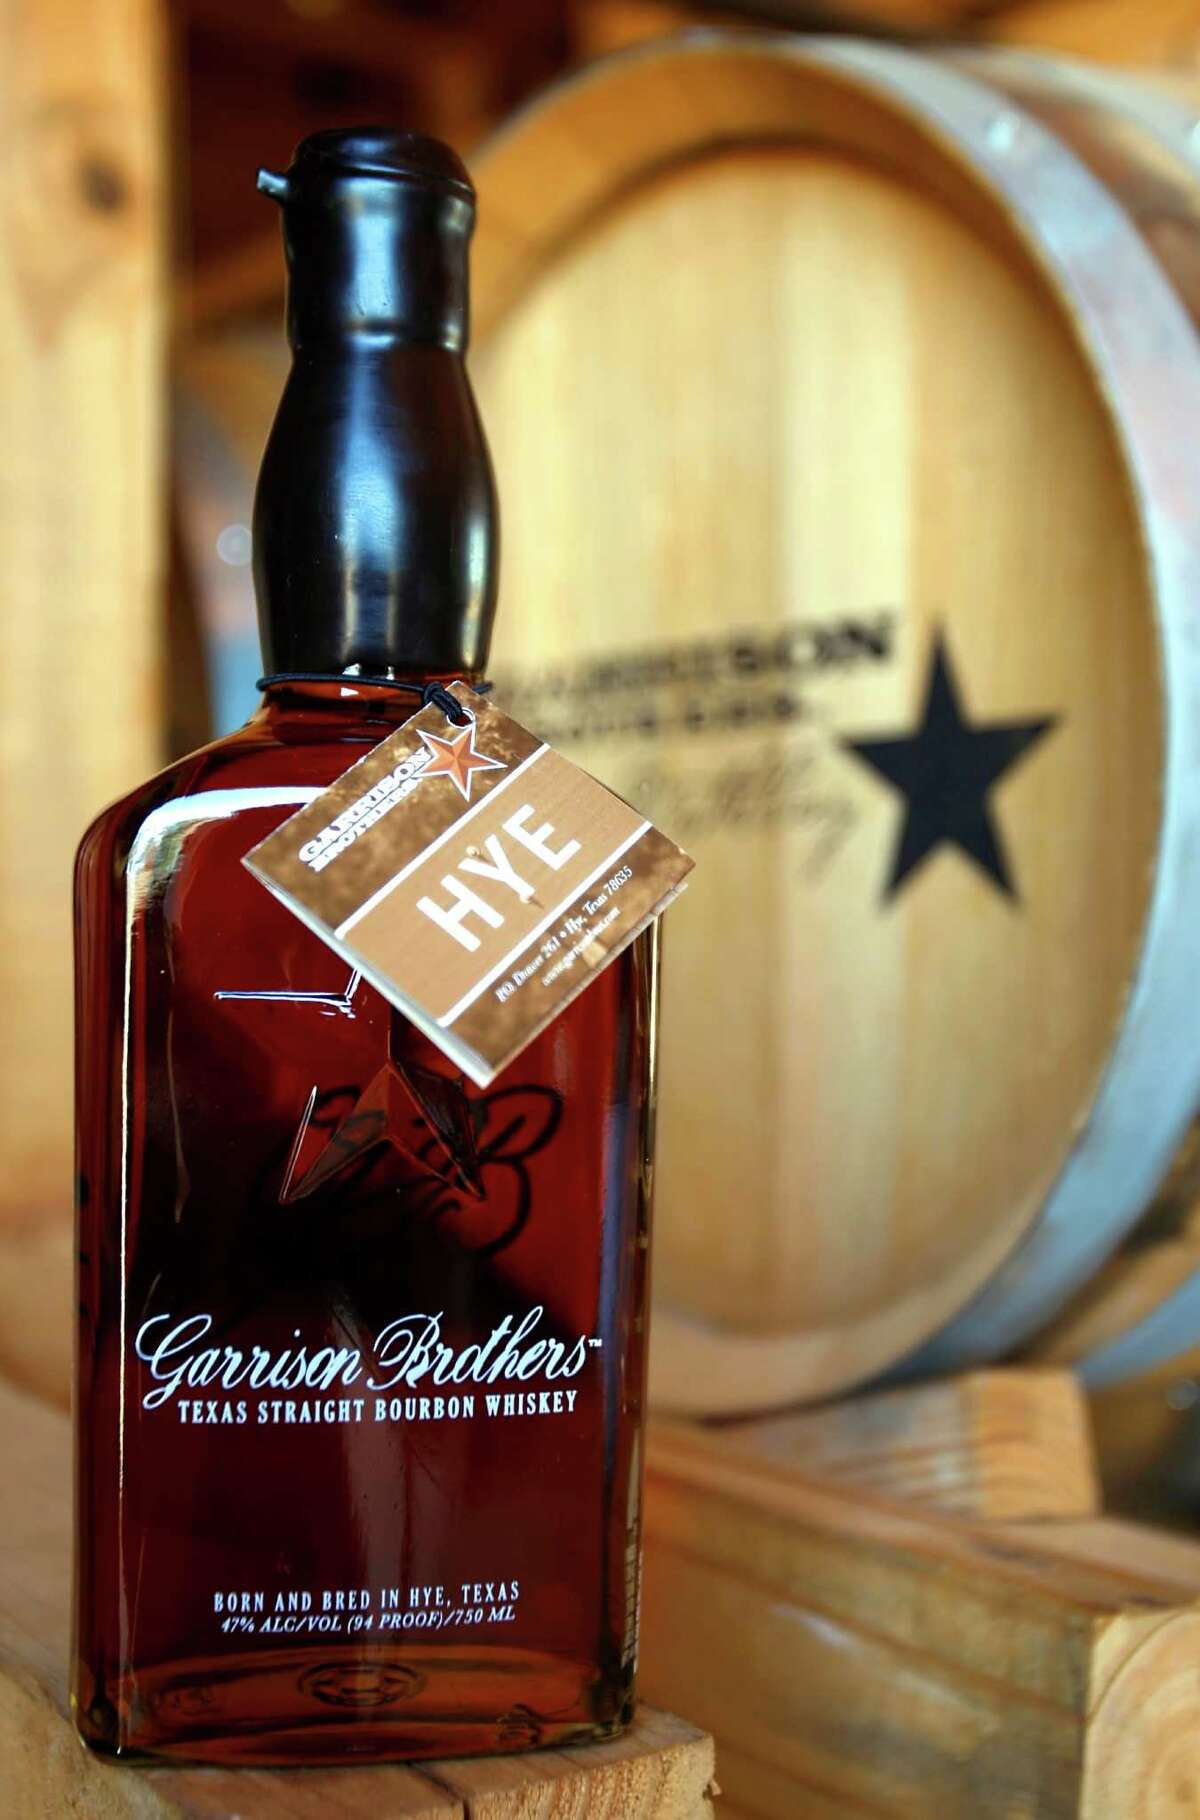 A bottle of Garrison Brothers bourbon